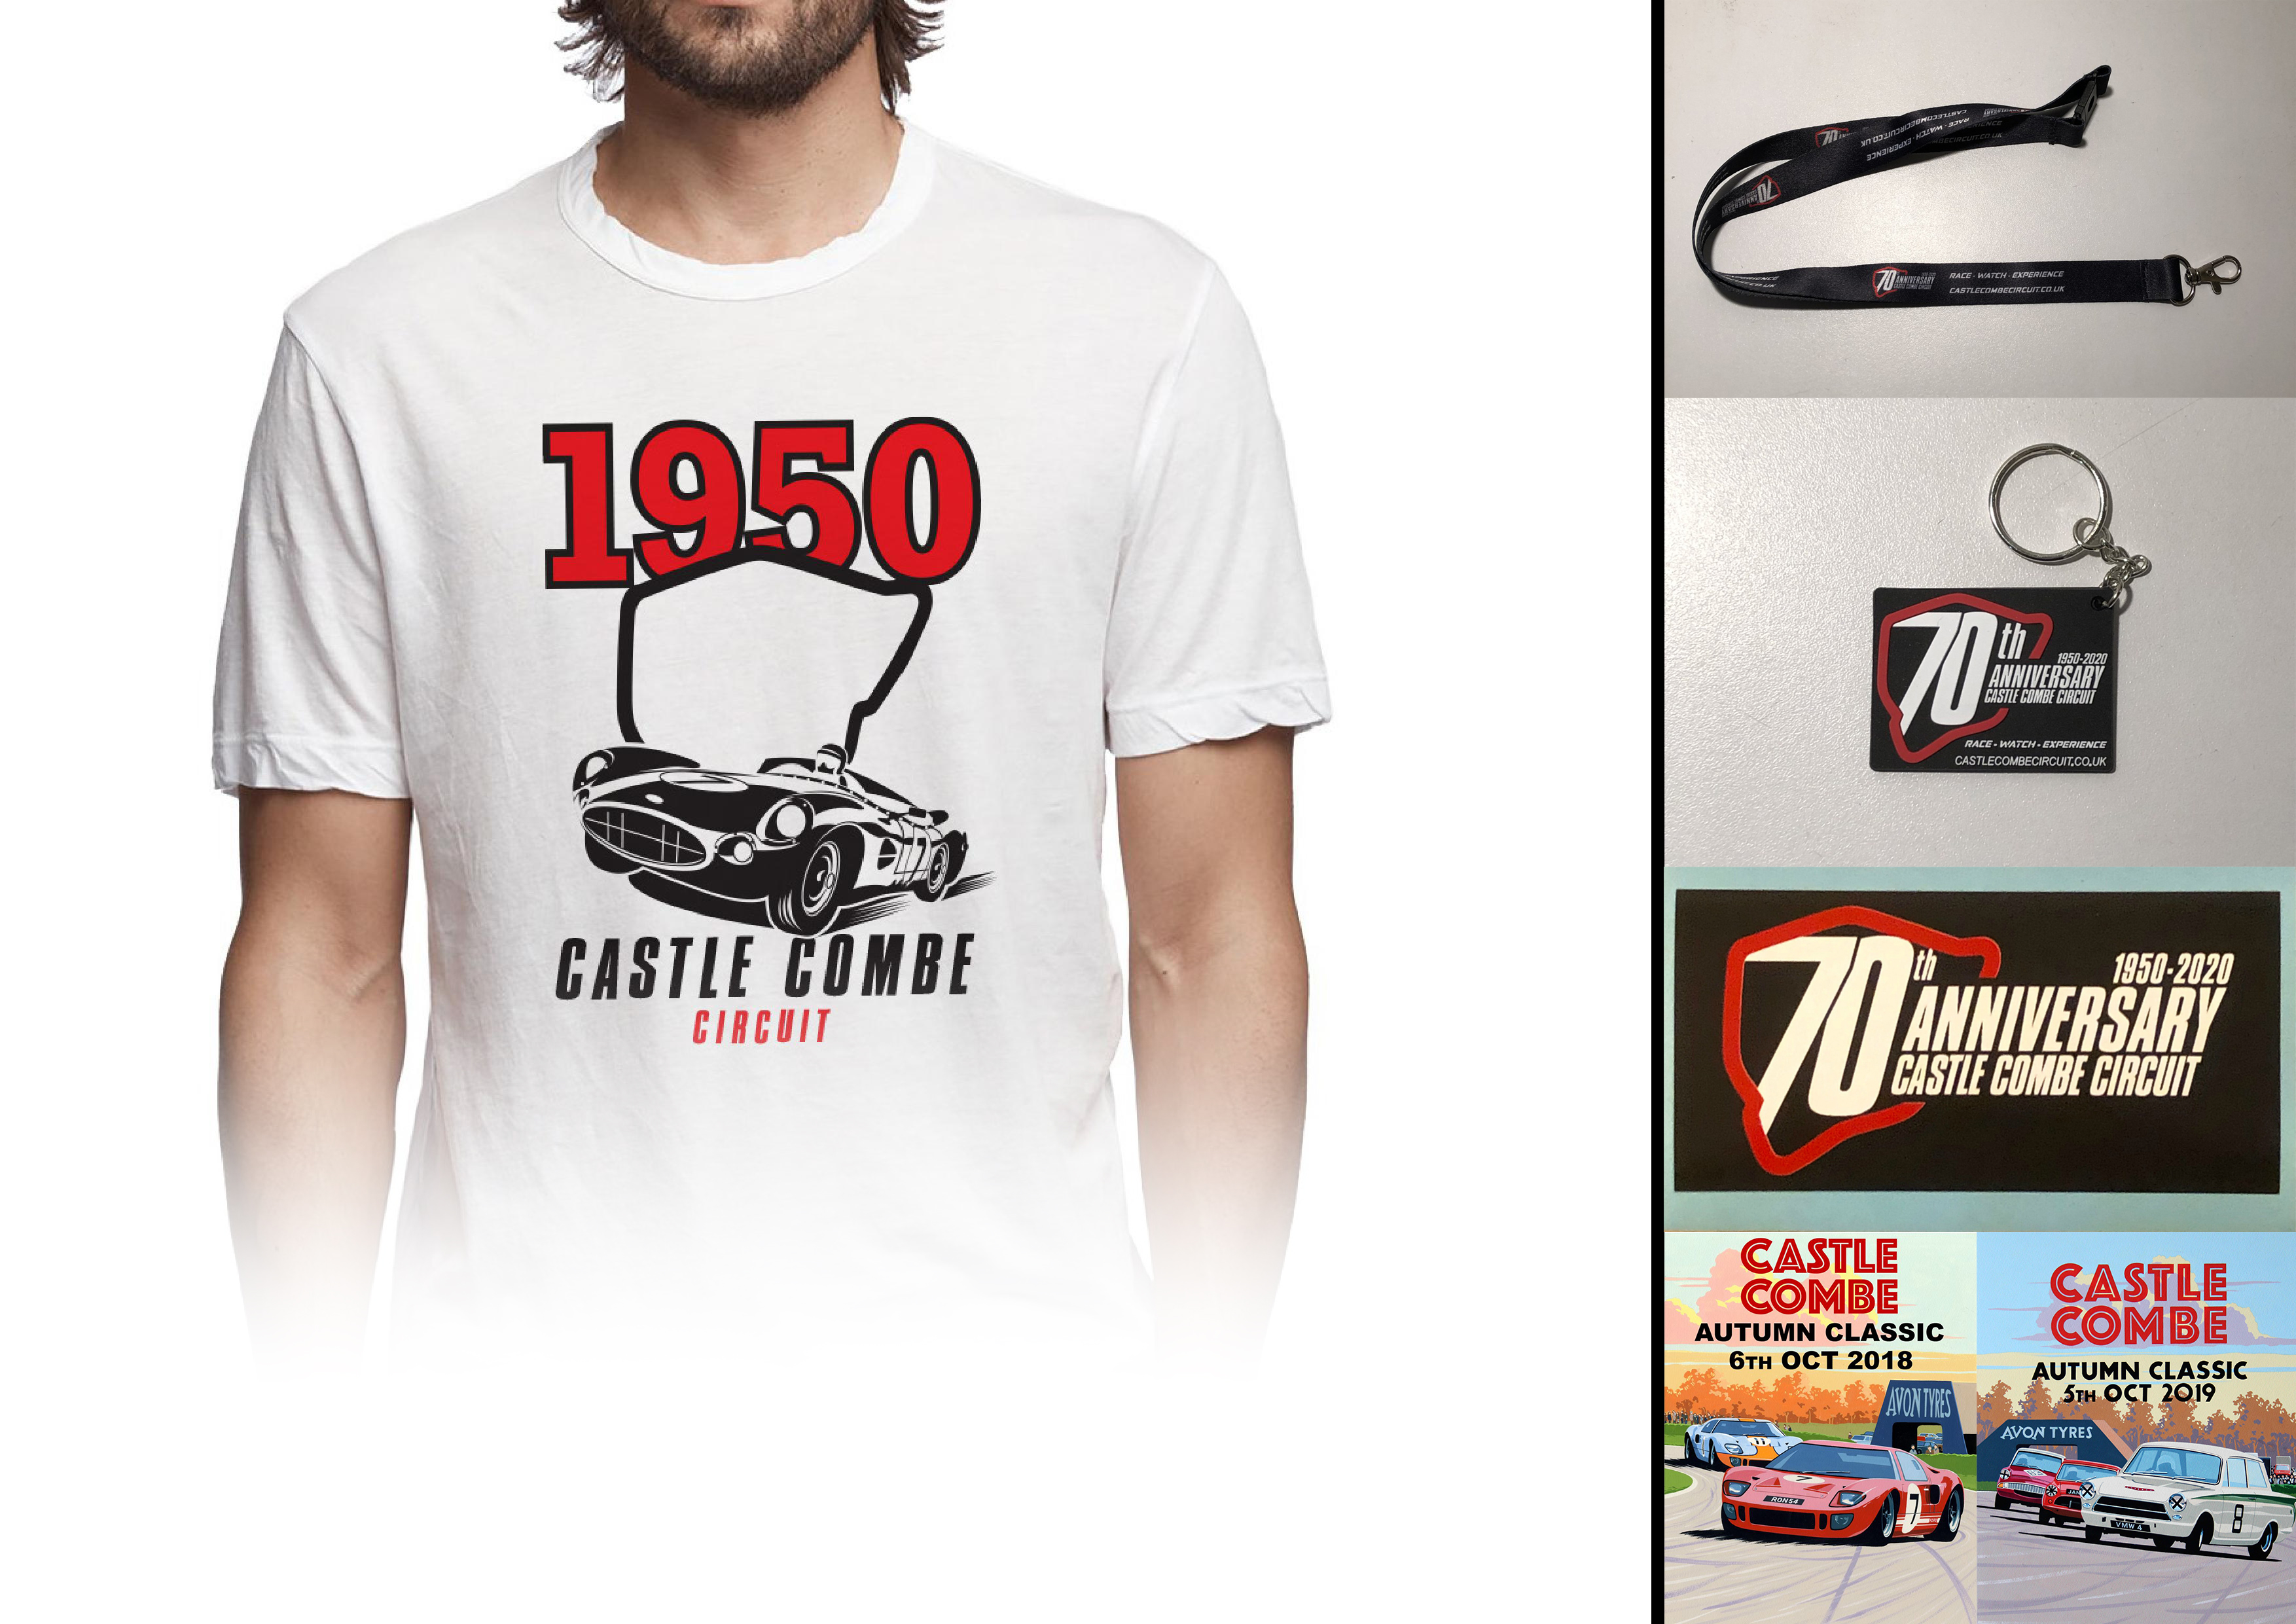 MERCHANDISE DISCOUNTS LAUNCHED TO CELEBRATE CIRCUIT'S 70TH ANNIVERSARY